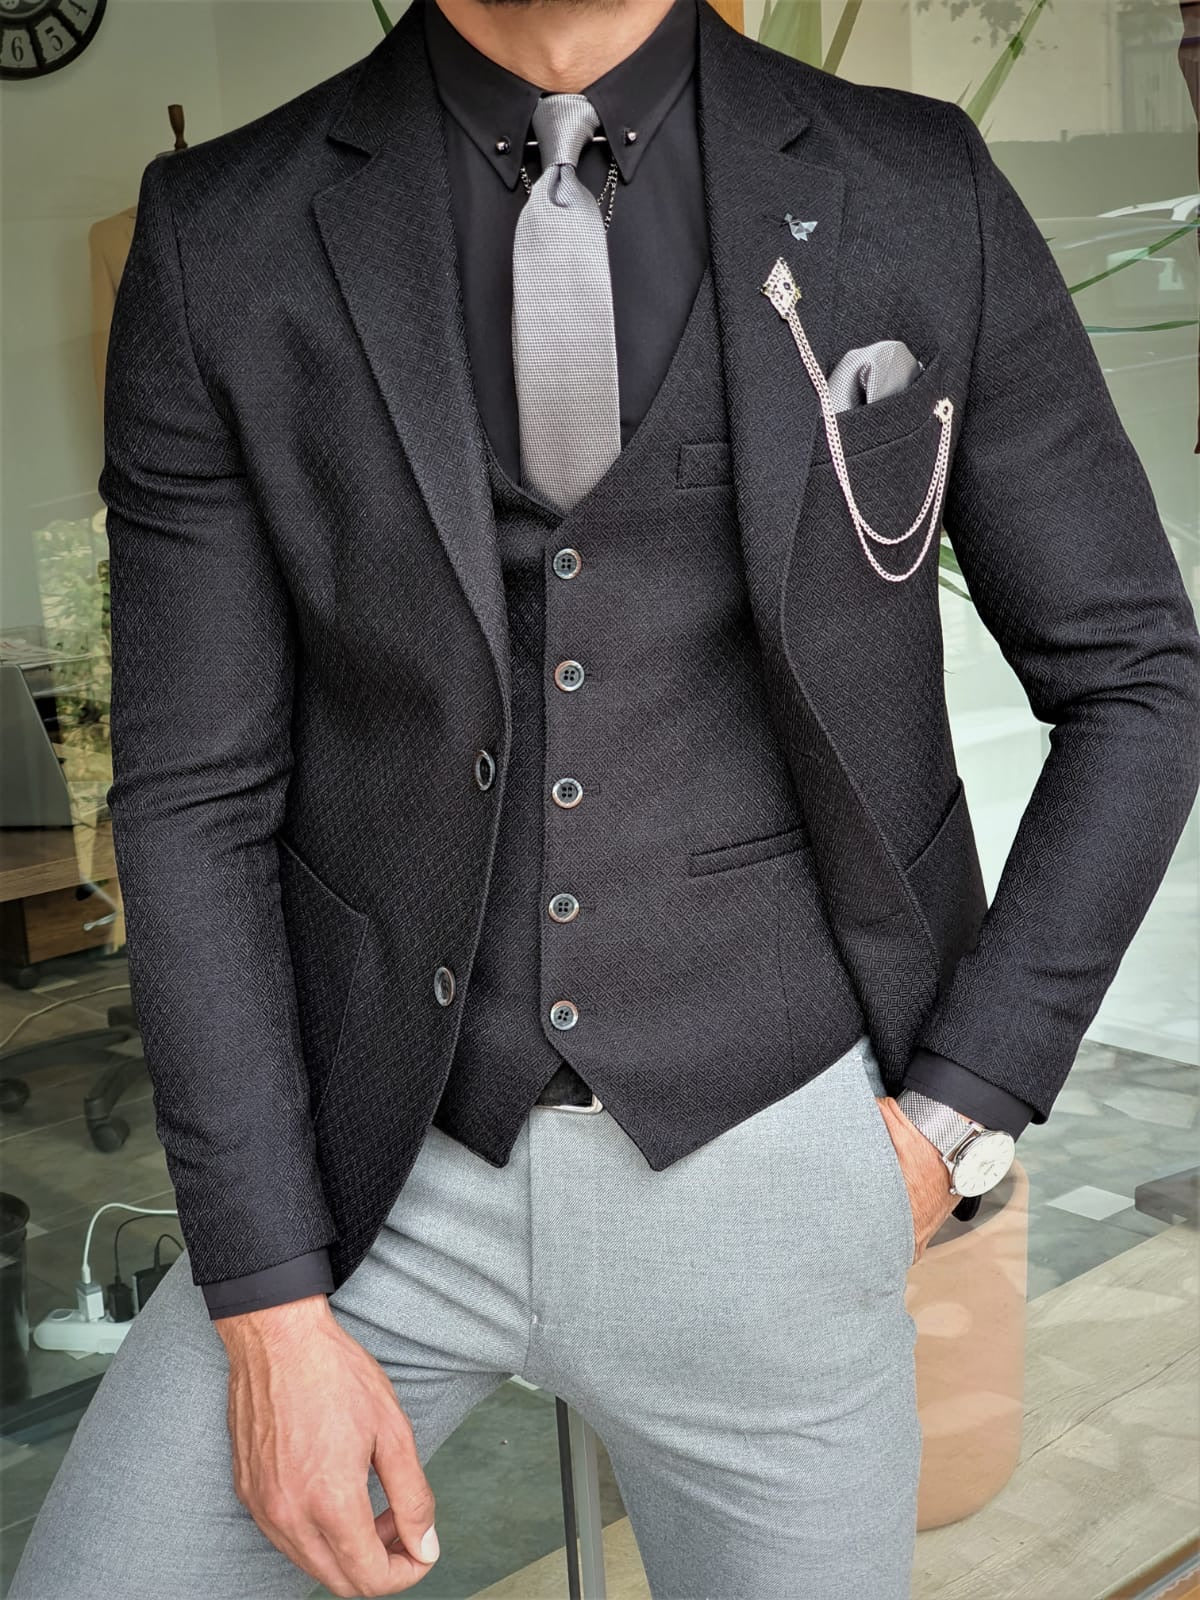 Henderson Jet Black Slim Fit Suit